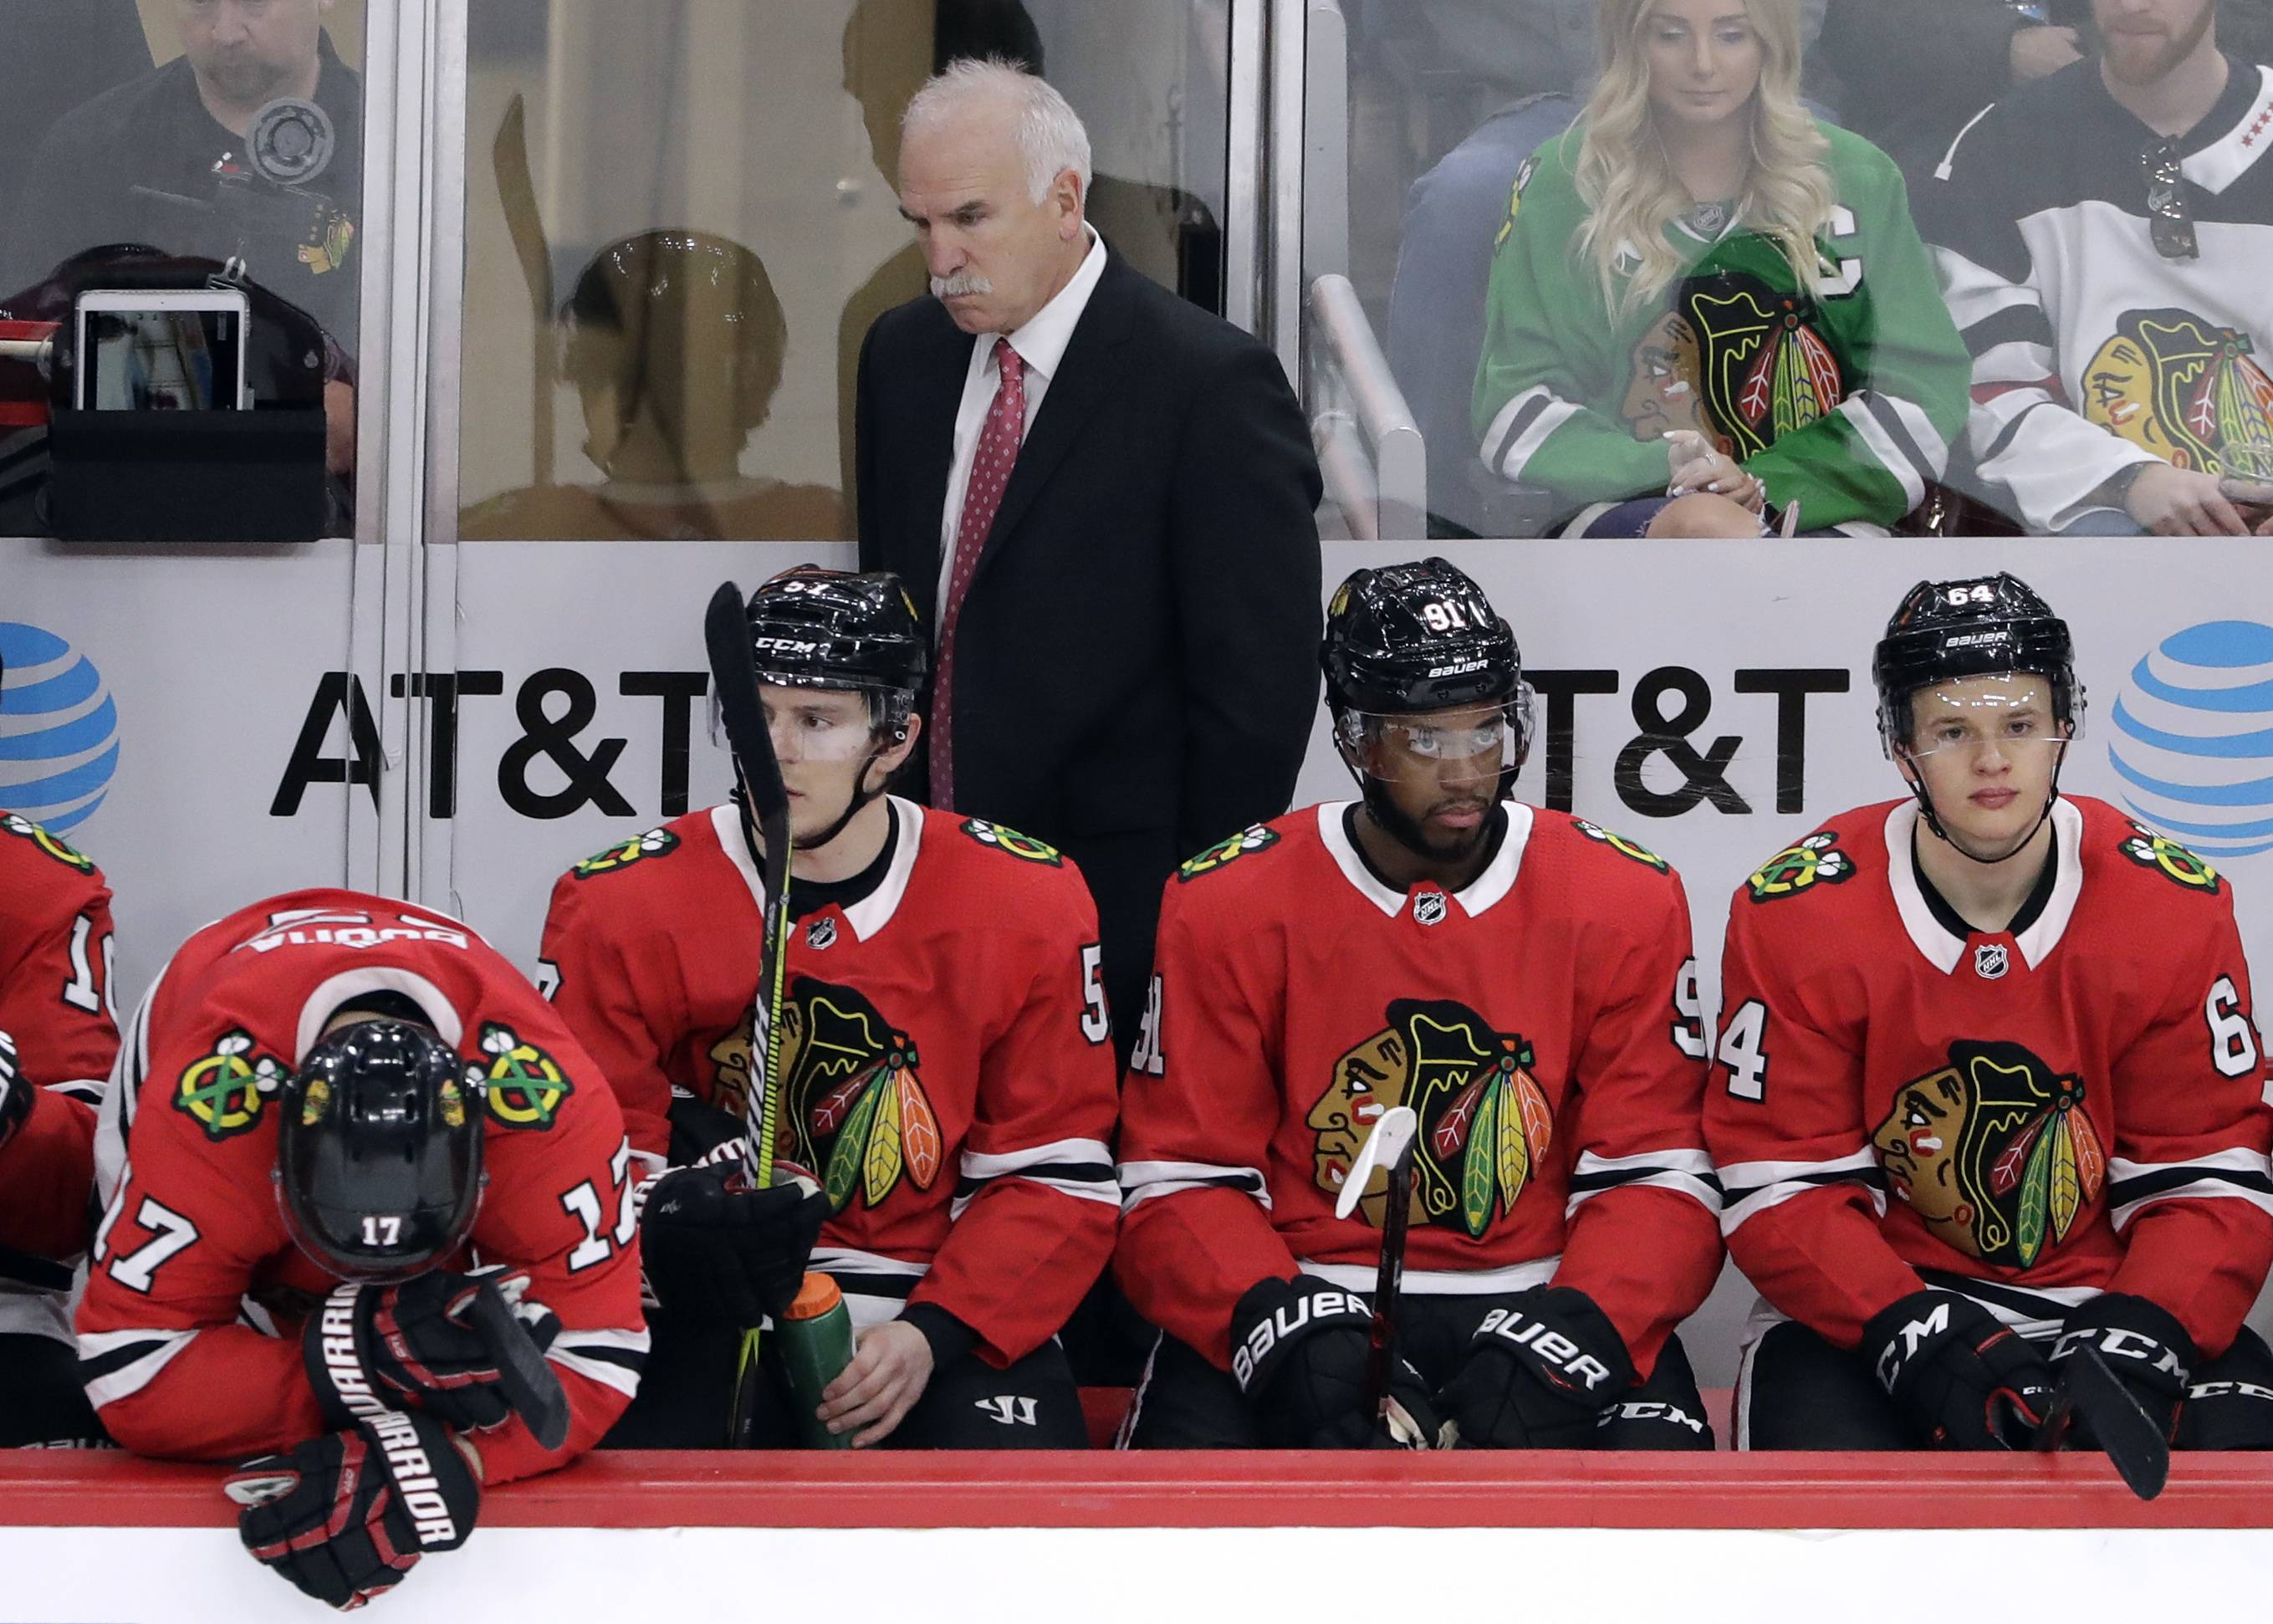 5 things the Chicago Blackhawks might do to change direction of franchise